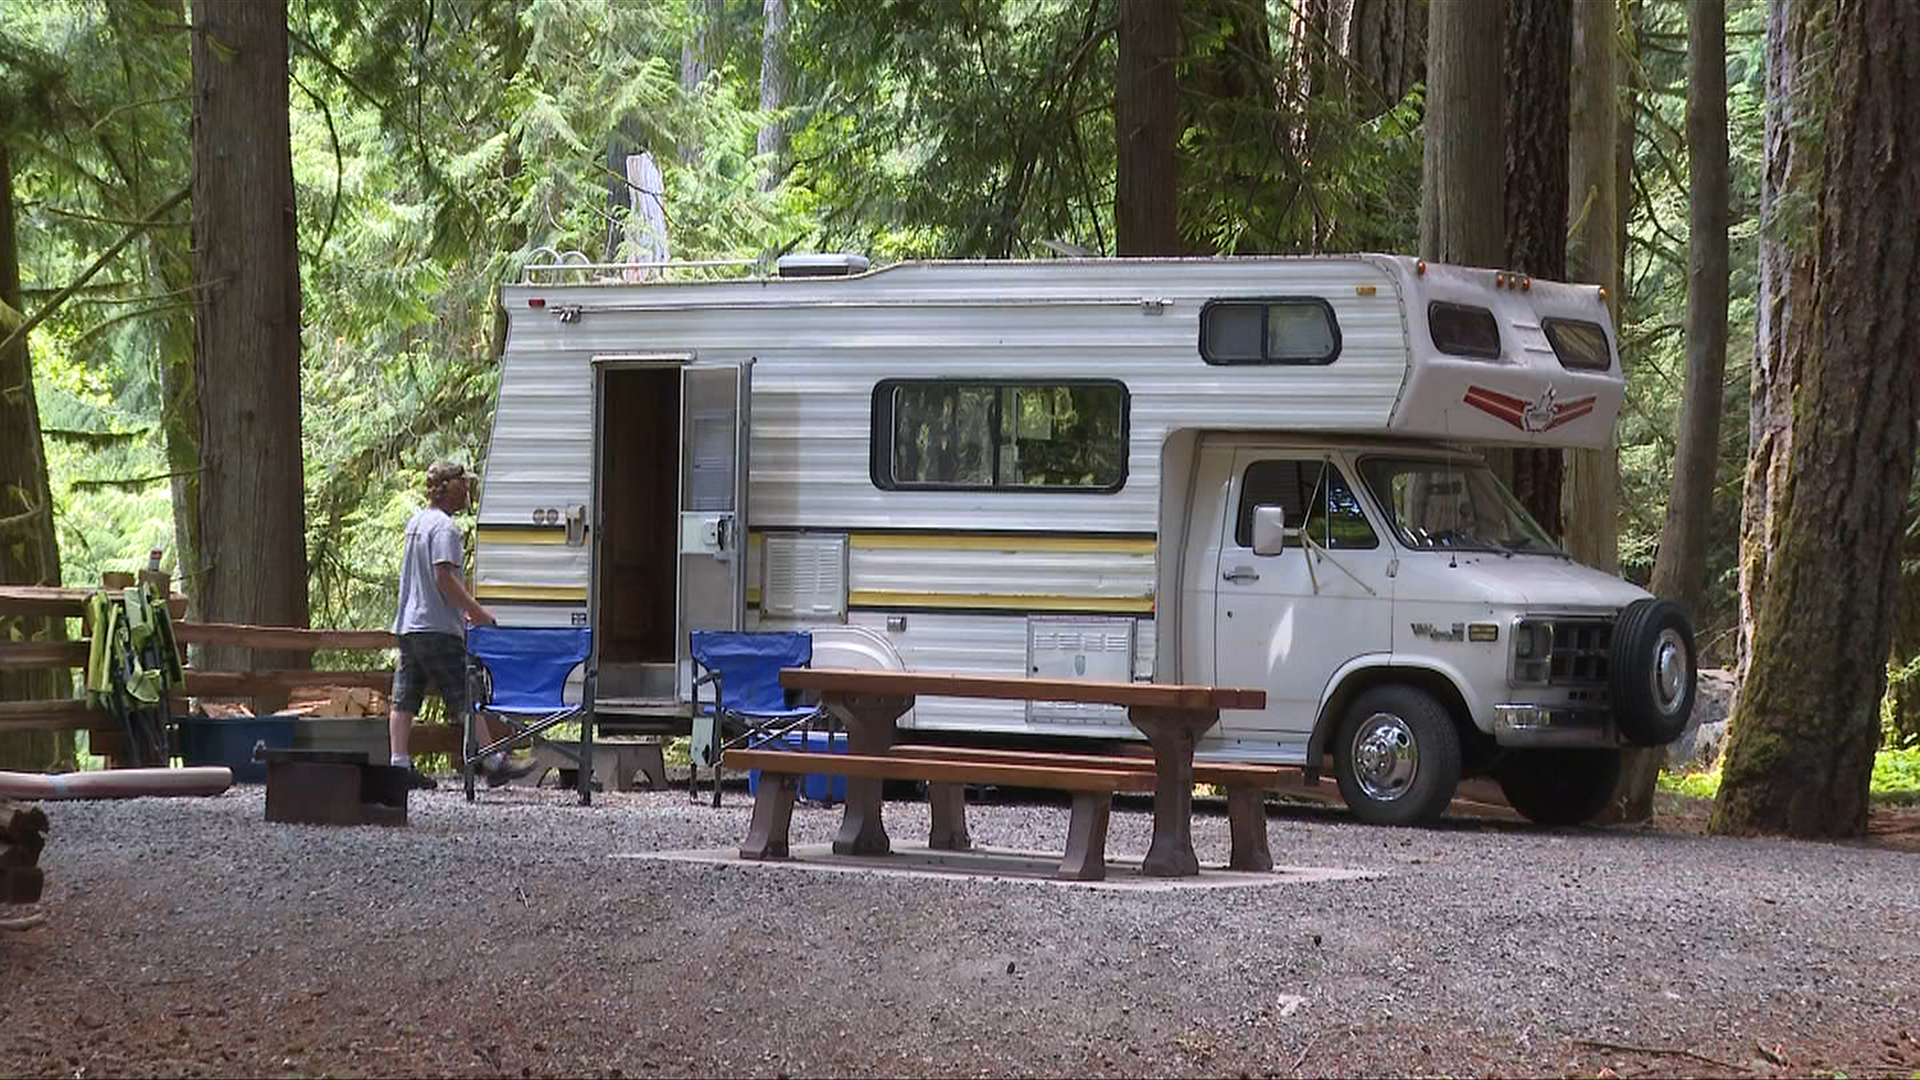 The New Normal: Camping on Vancouver Island surges amid COVID-19